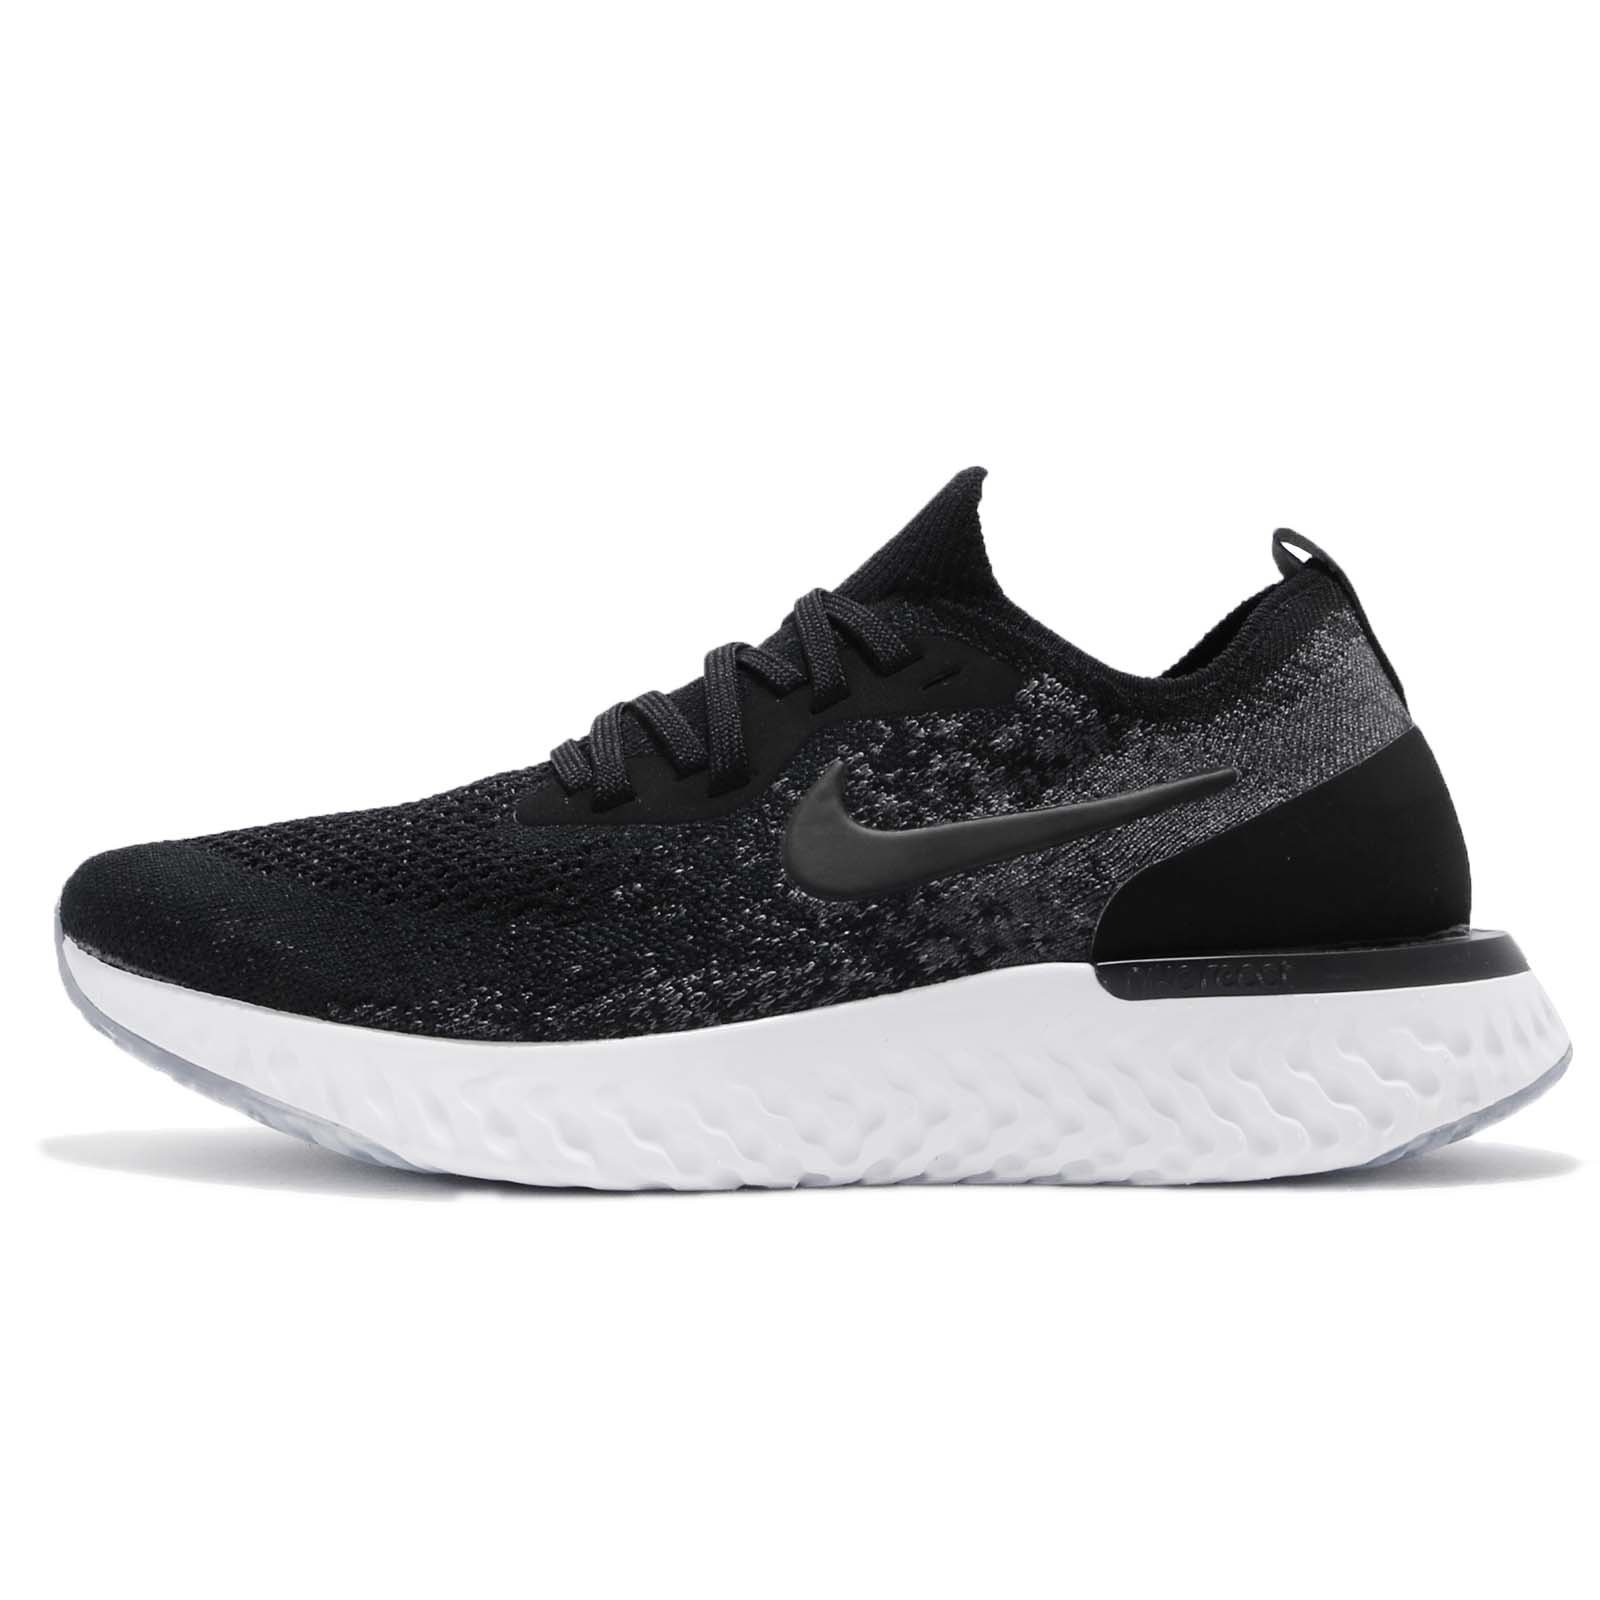 375f31f50f728 Galleon - Nike Women s Epic React Flyknit Running Shoes (7.5